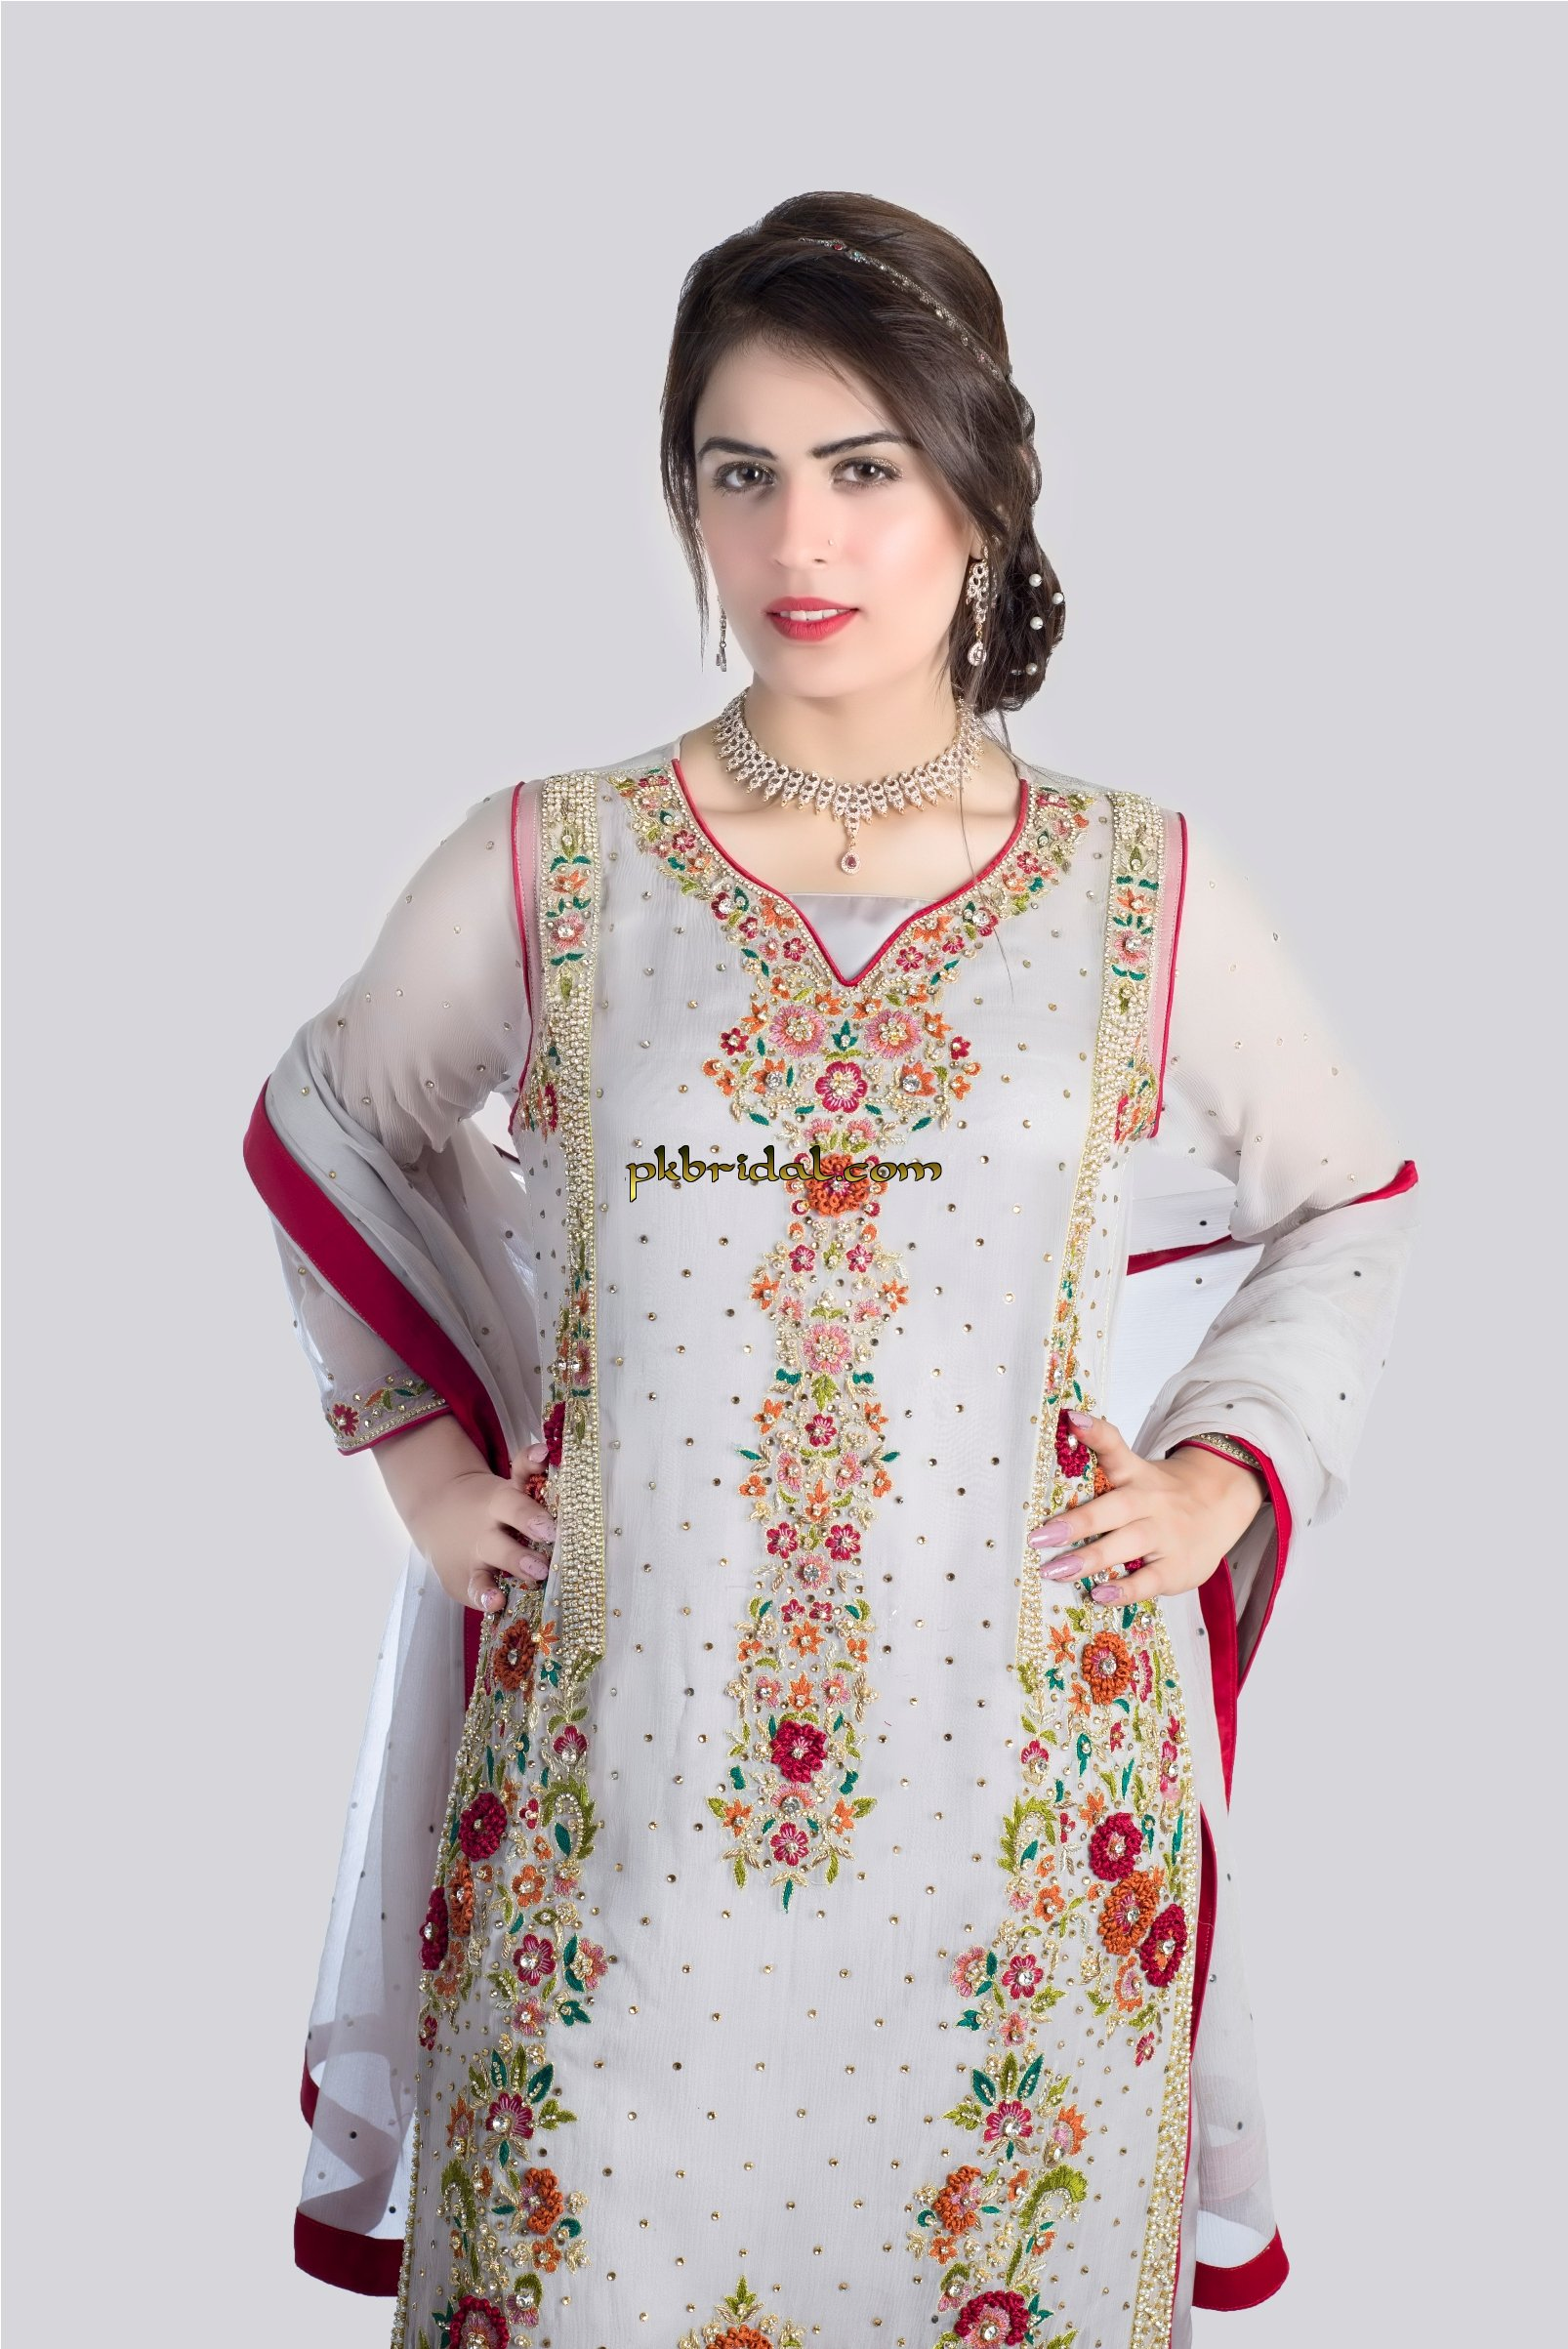 baari-hand-embroidered-dresses-5